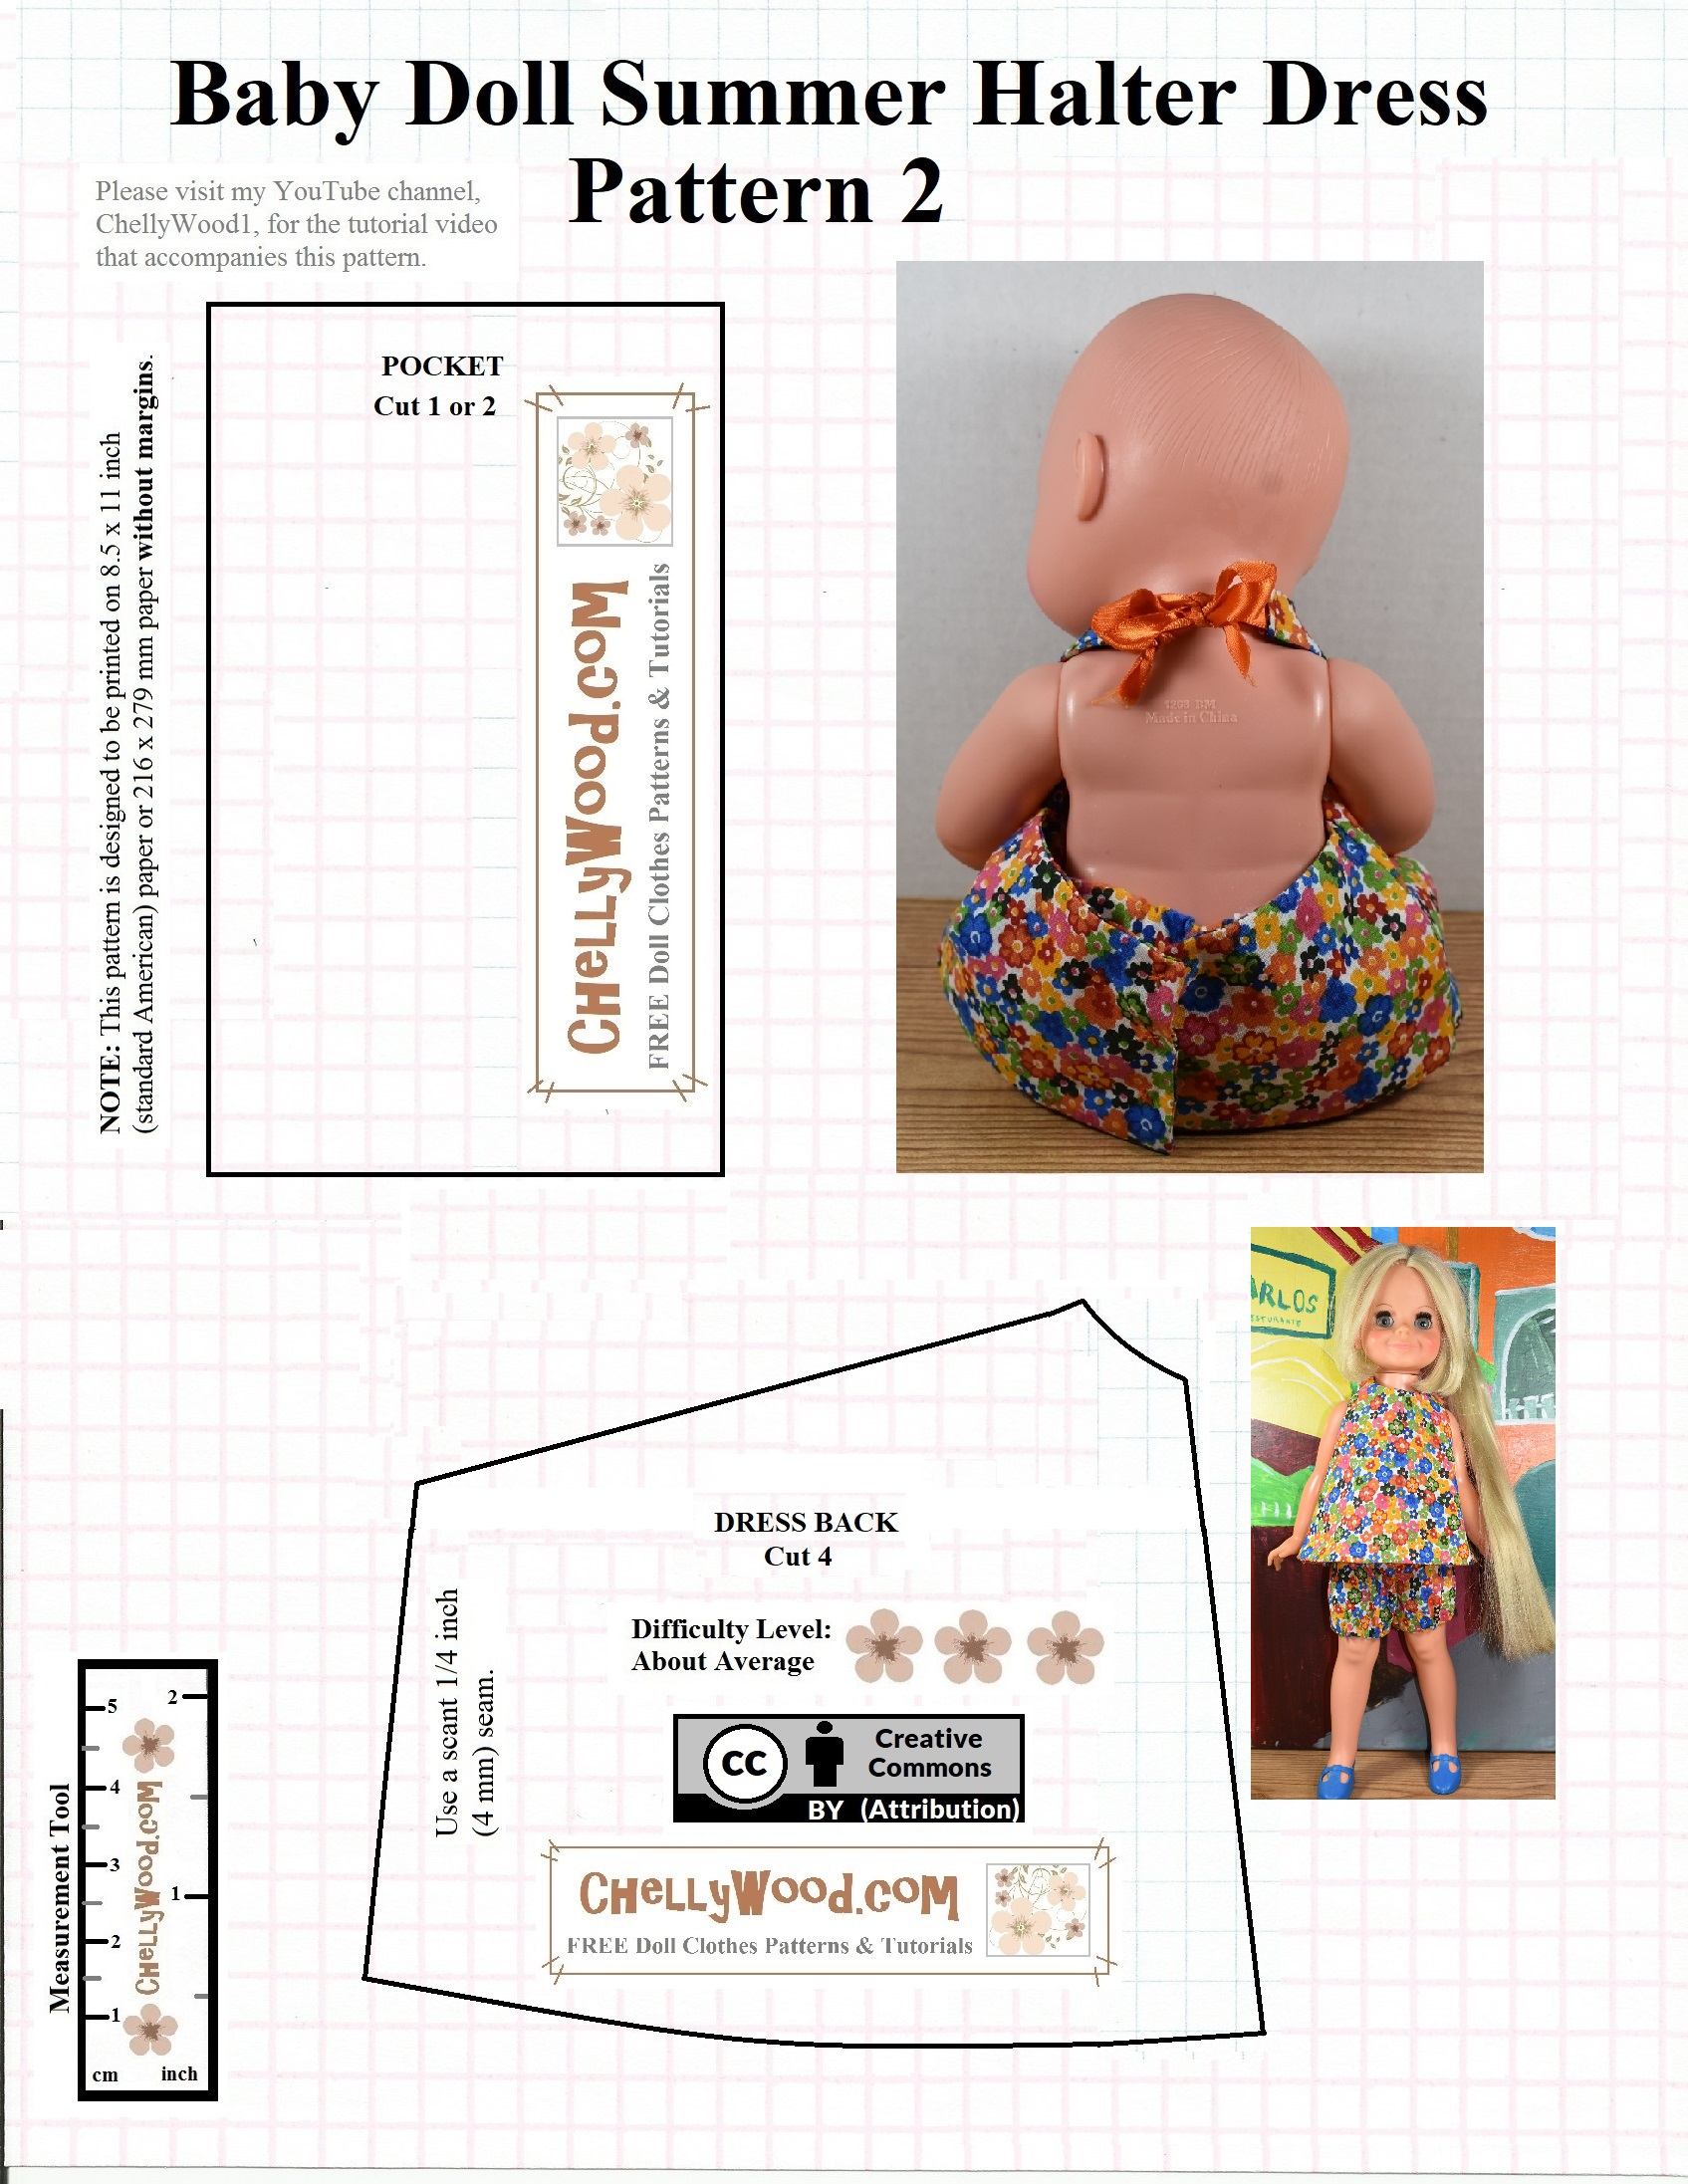 Free Dollclothes Patterns For 12 Baby Dolls Chellywood Com